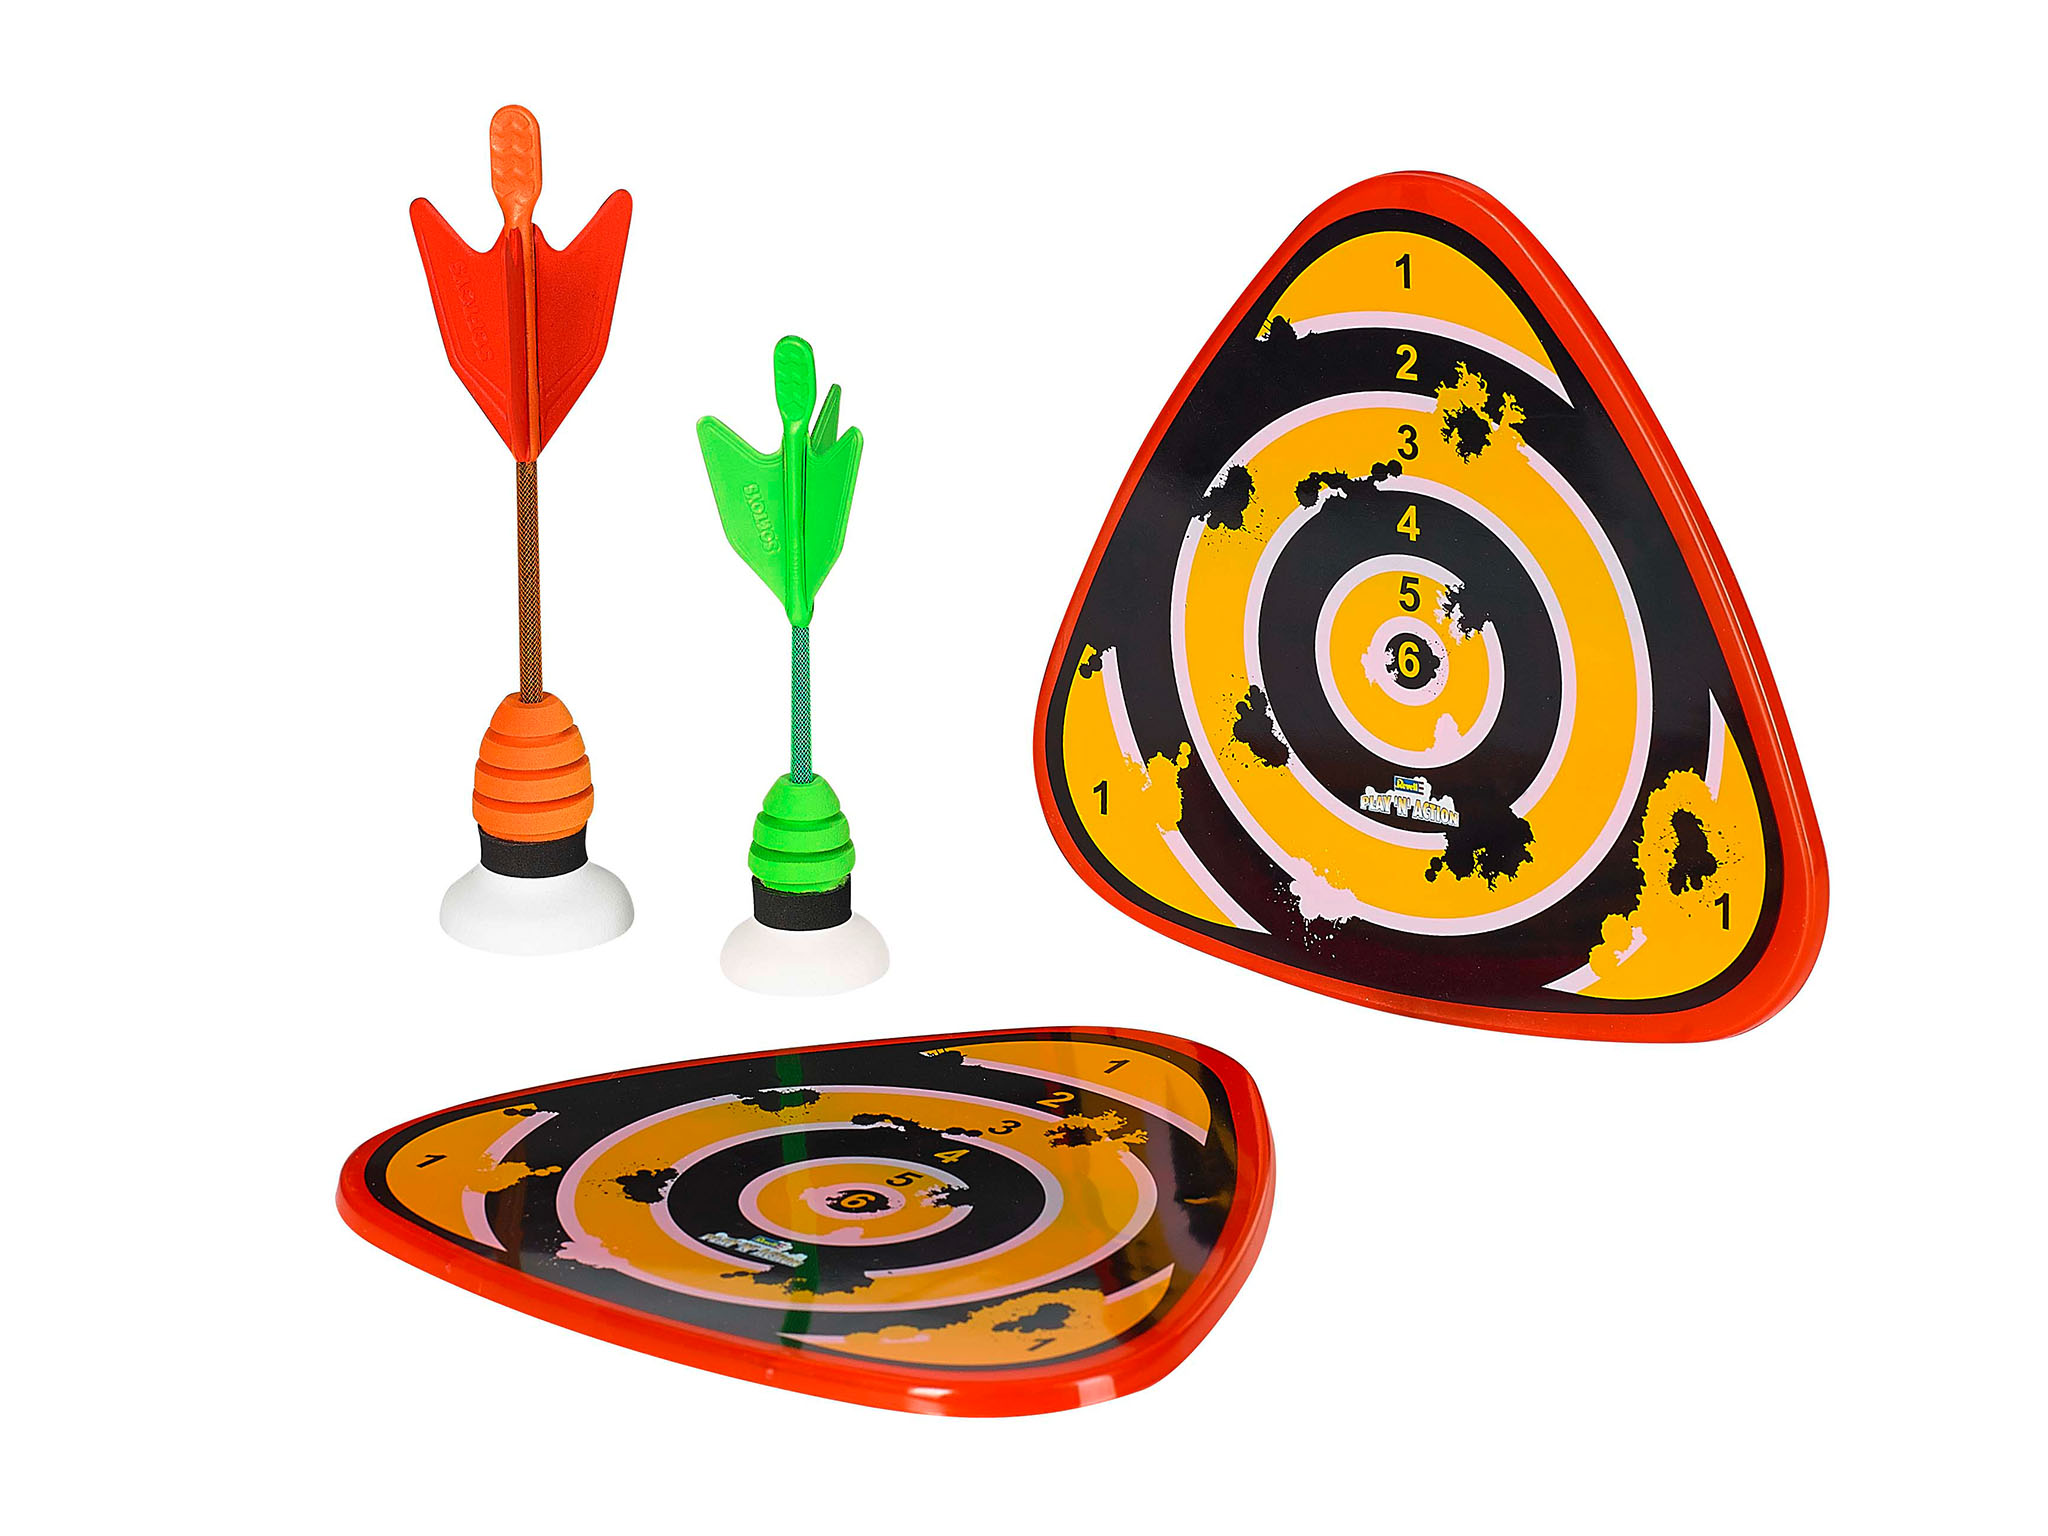 game fun darts modellsport schweighofer. Black Bedroom Furniture Sets. Home Design Ideas